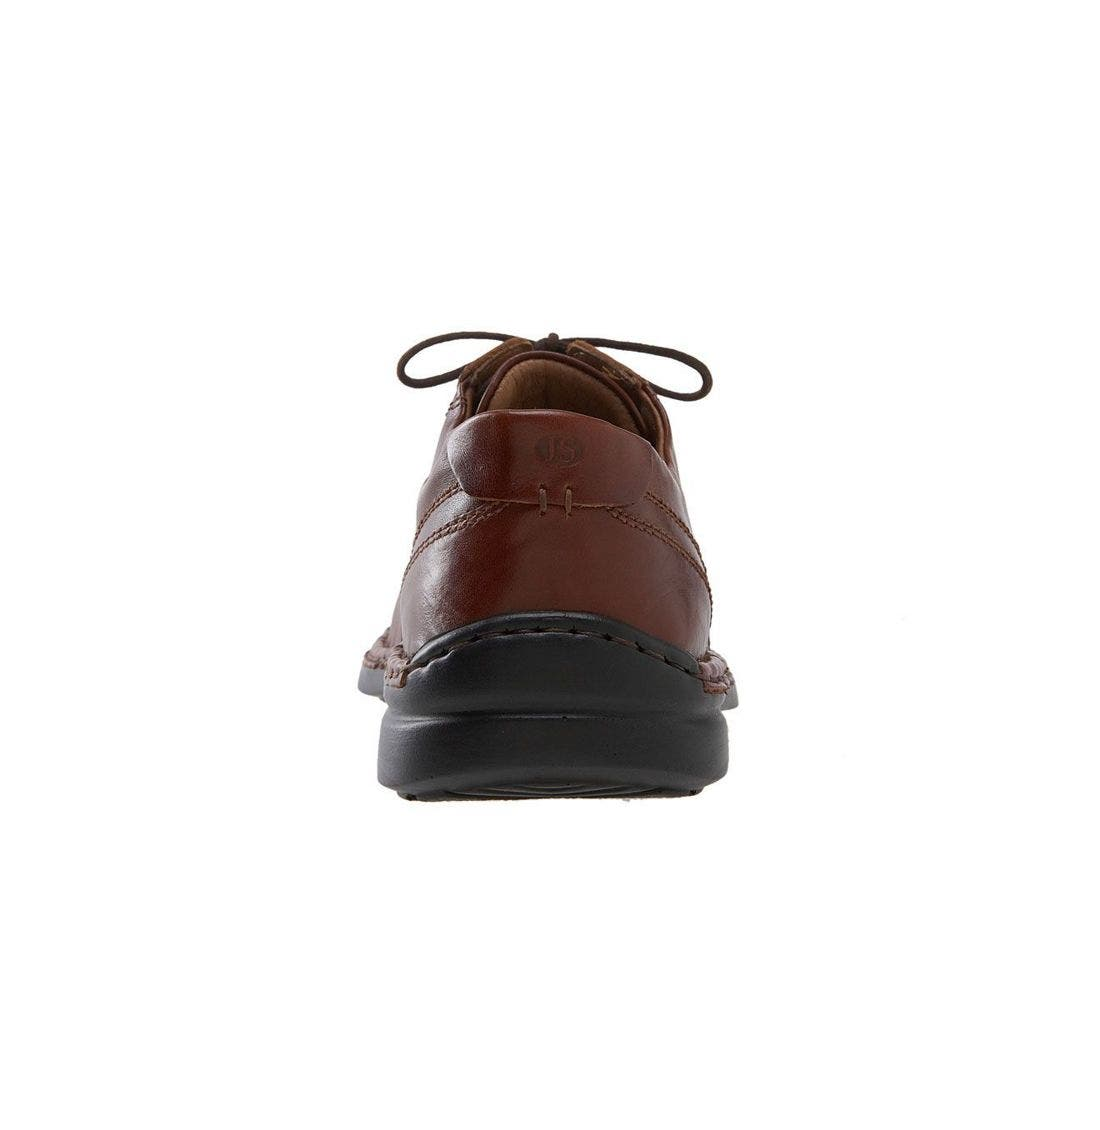 JOSEF SEIBEL,                             'Walt' Casual Oxford,                             Alternate thumbnail 3, color,                             ROMA BRANDY